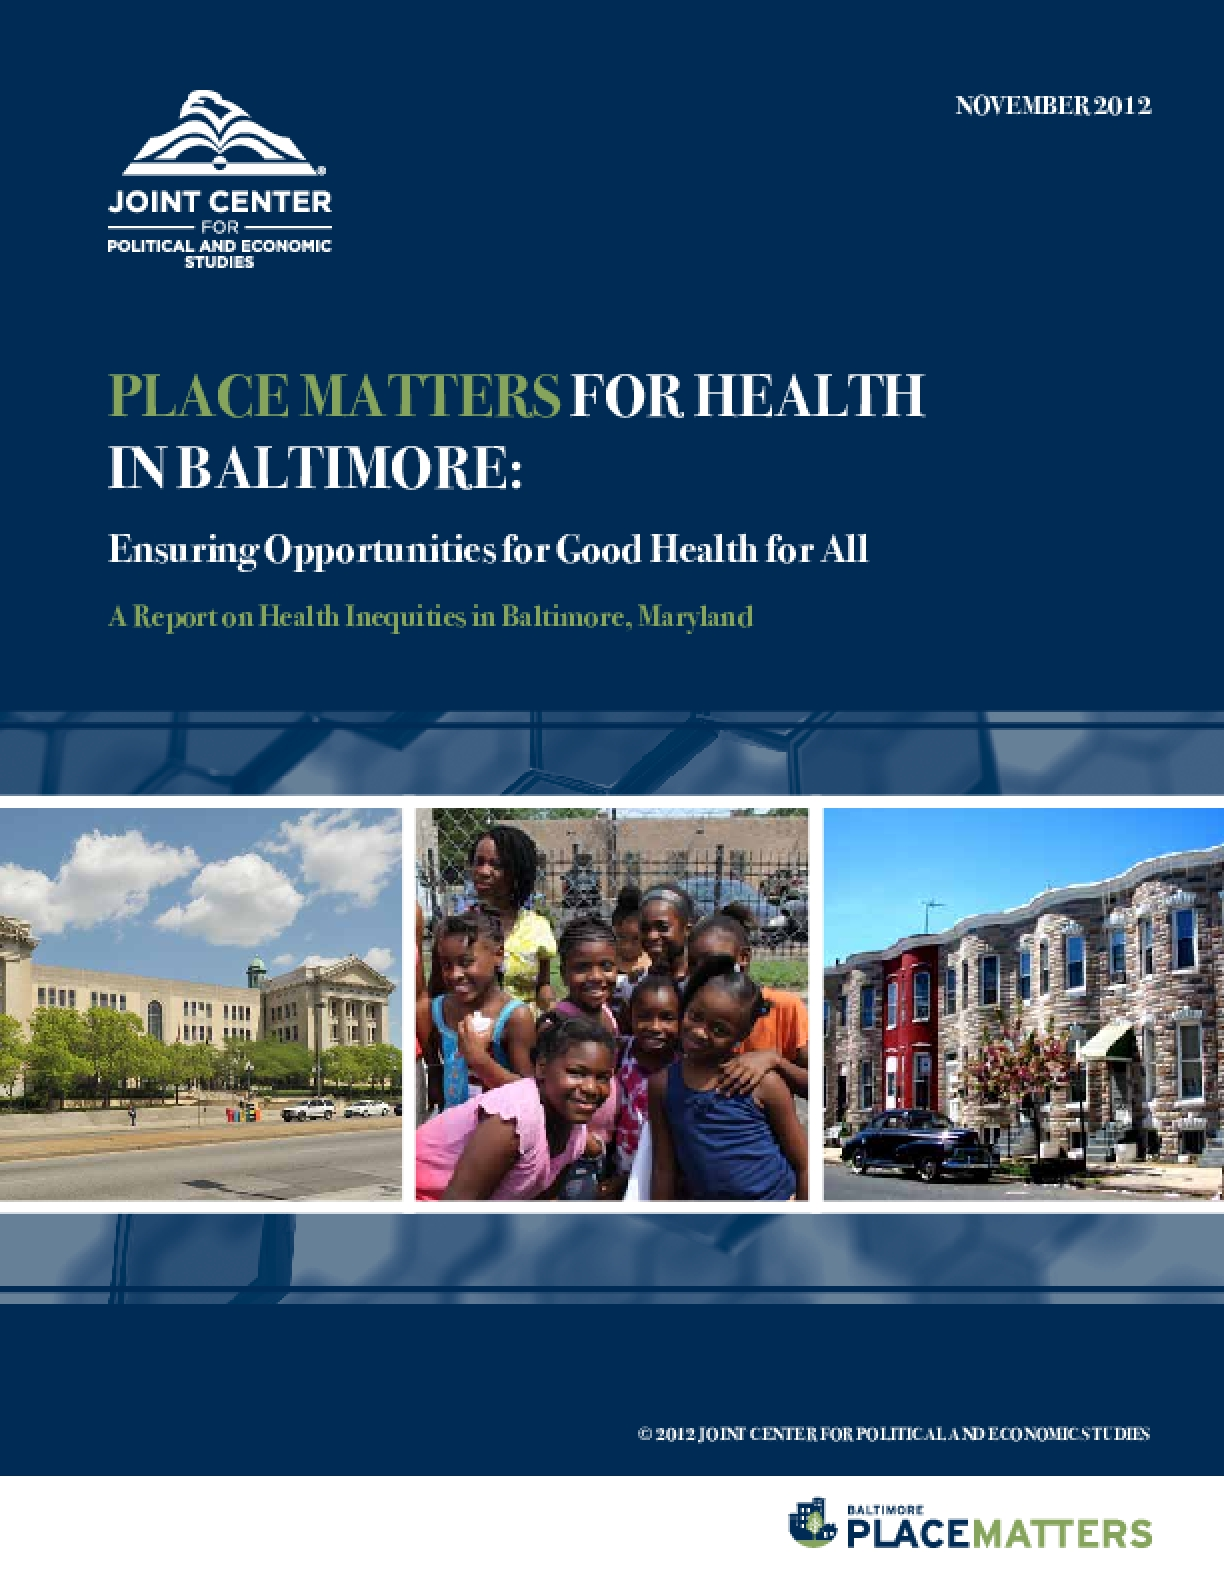 Place Matters for Health in Baltimore: Ensuring Opportunities for Good Health for All, A Report on Health Inequities in Baltimore, Maryland